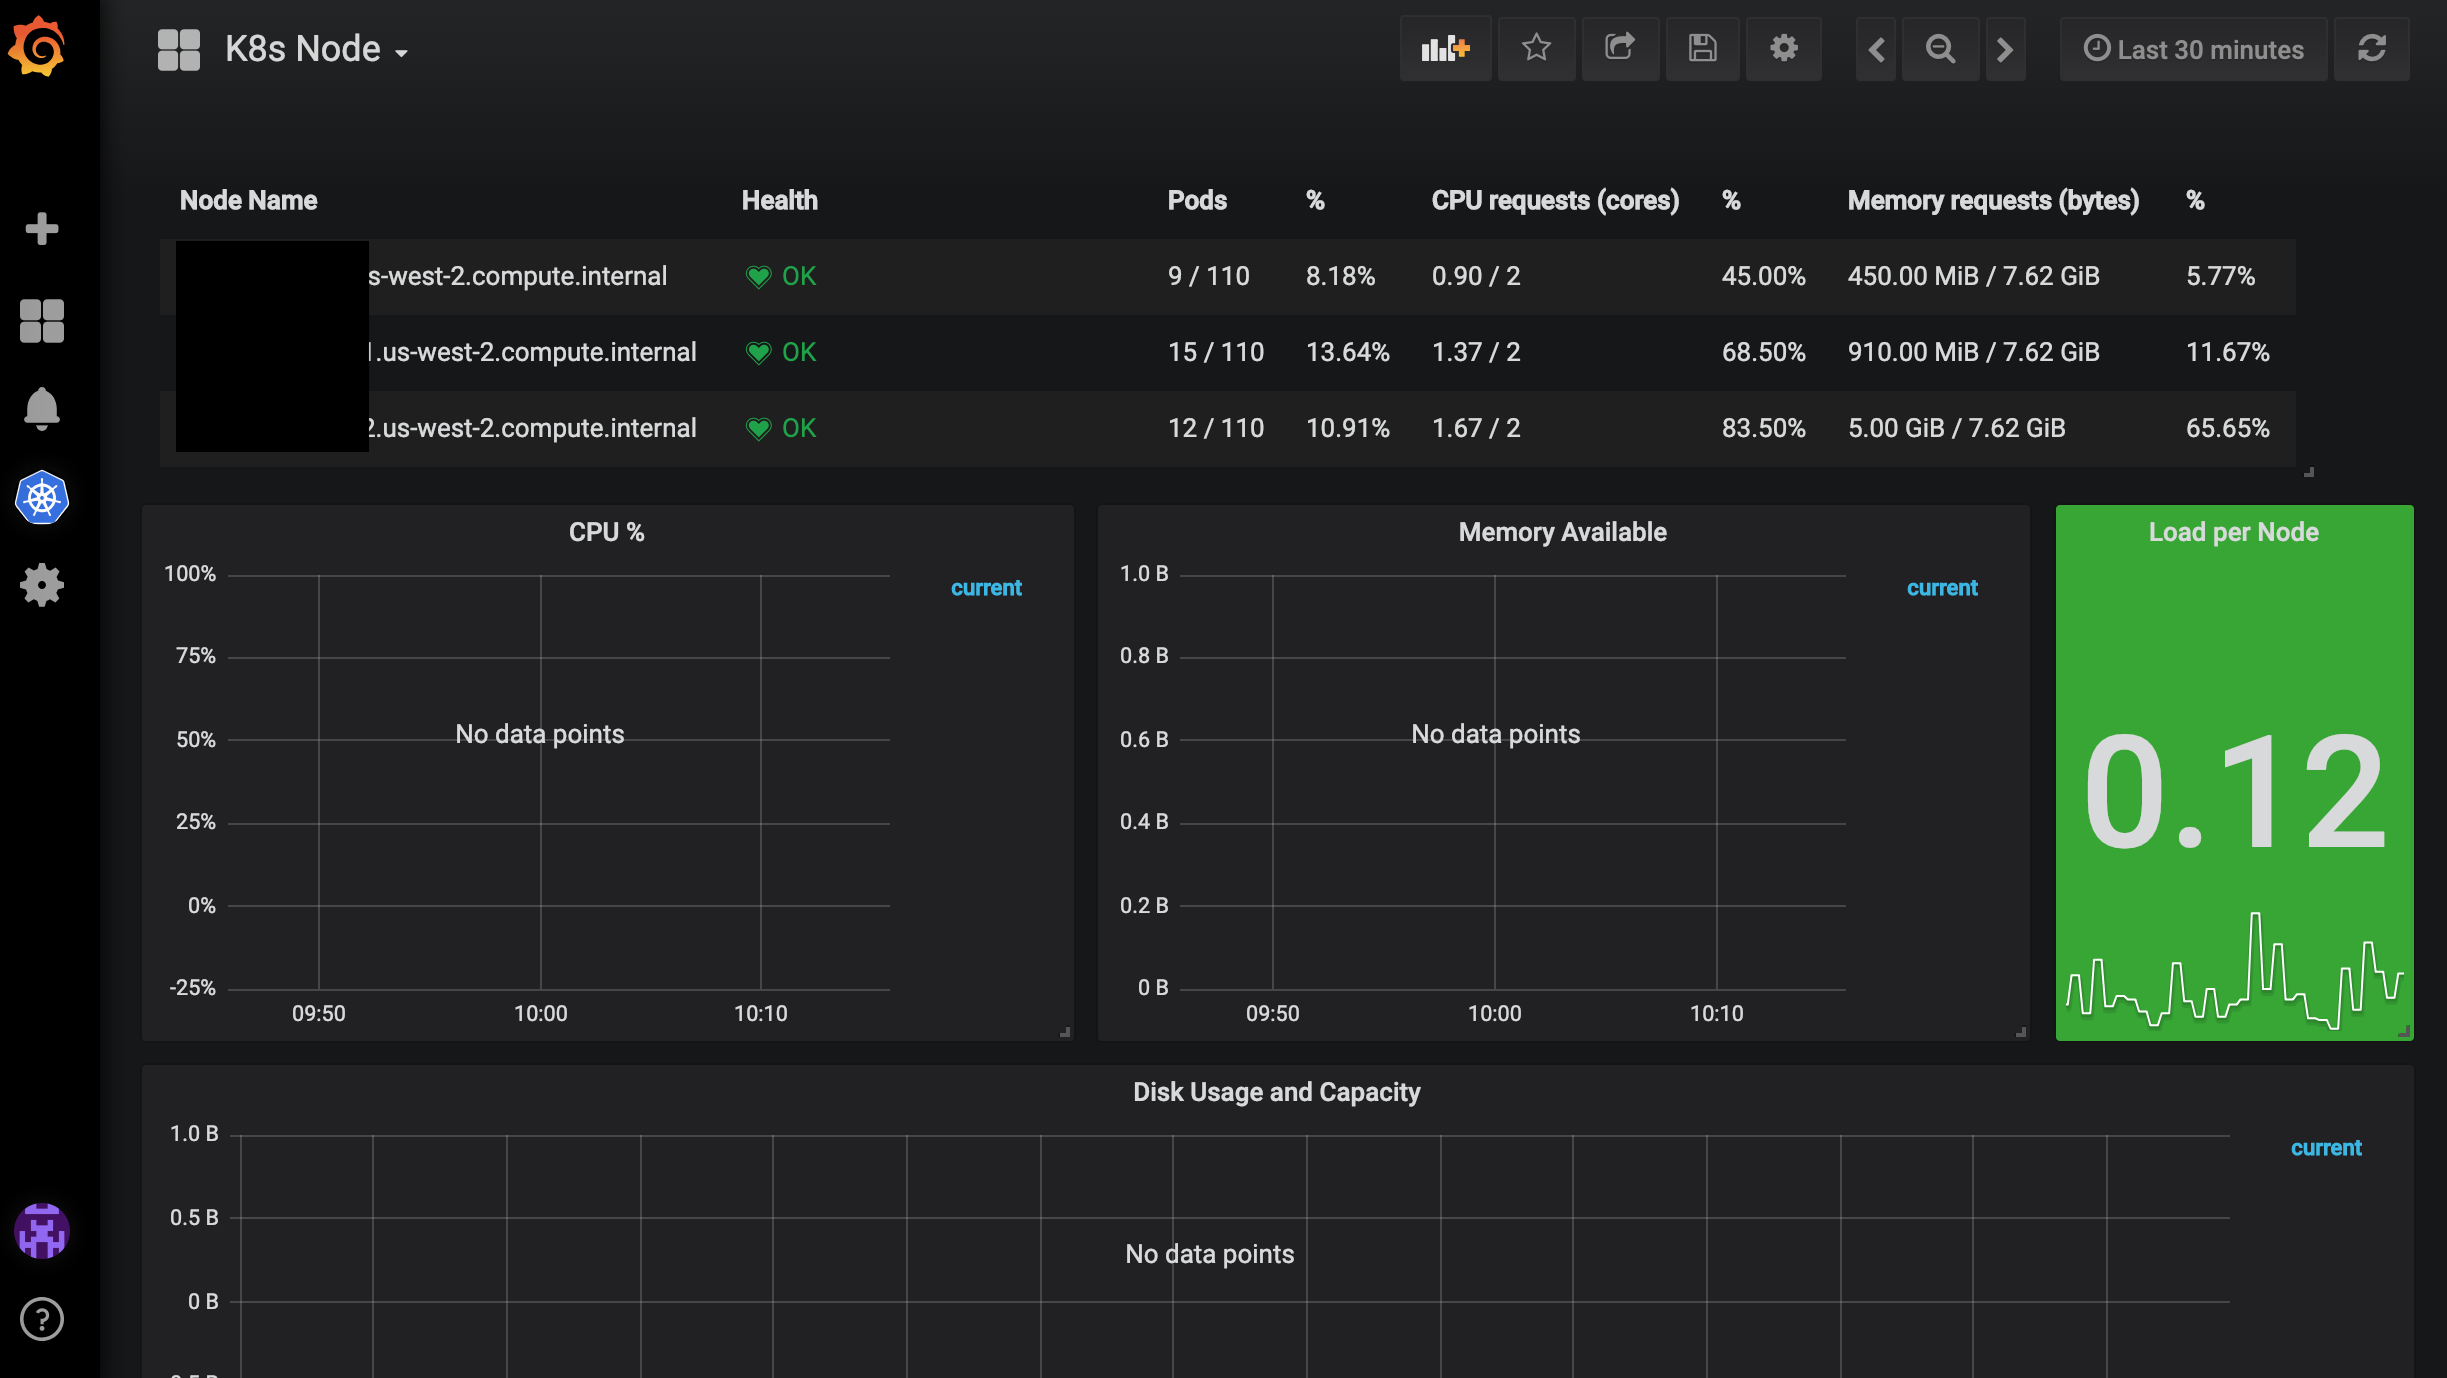 grafana dashboards K8s Node doesn't display ? metrics